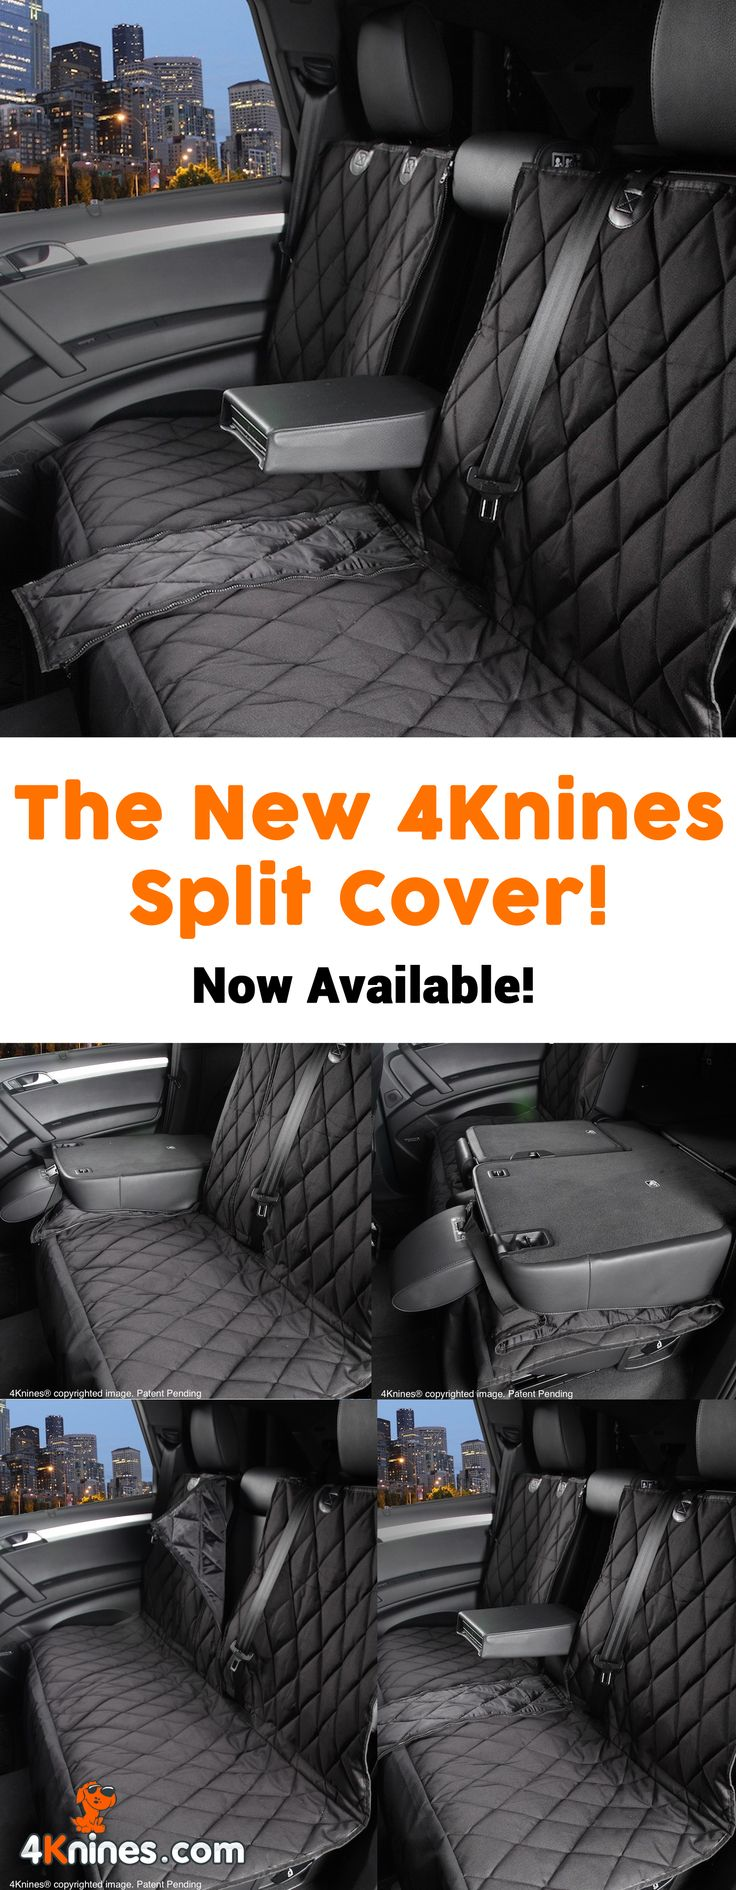 4Knines Split Seat Covers for dogs and pets allows for use of a 60/40 split seat. Check it out here! http://4knines.com/pages/4knines-split-rear-seat-covers-for-dogs